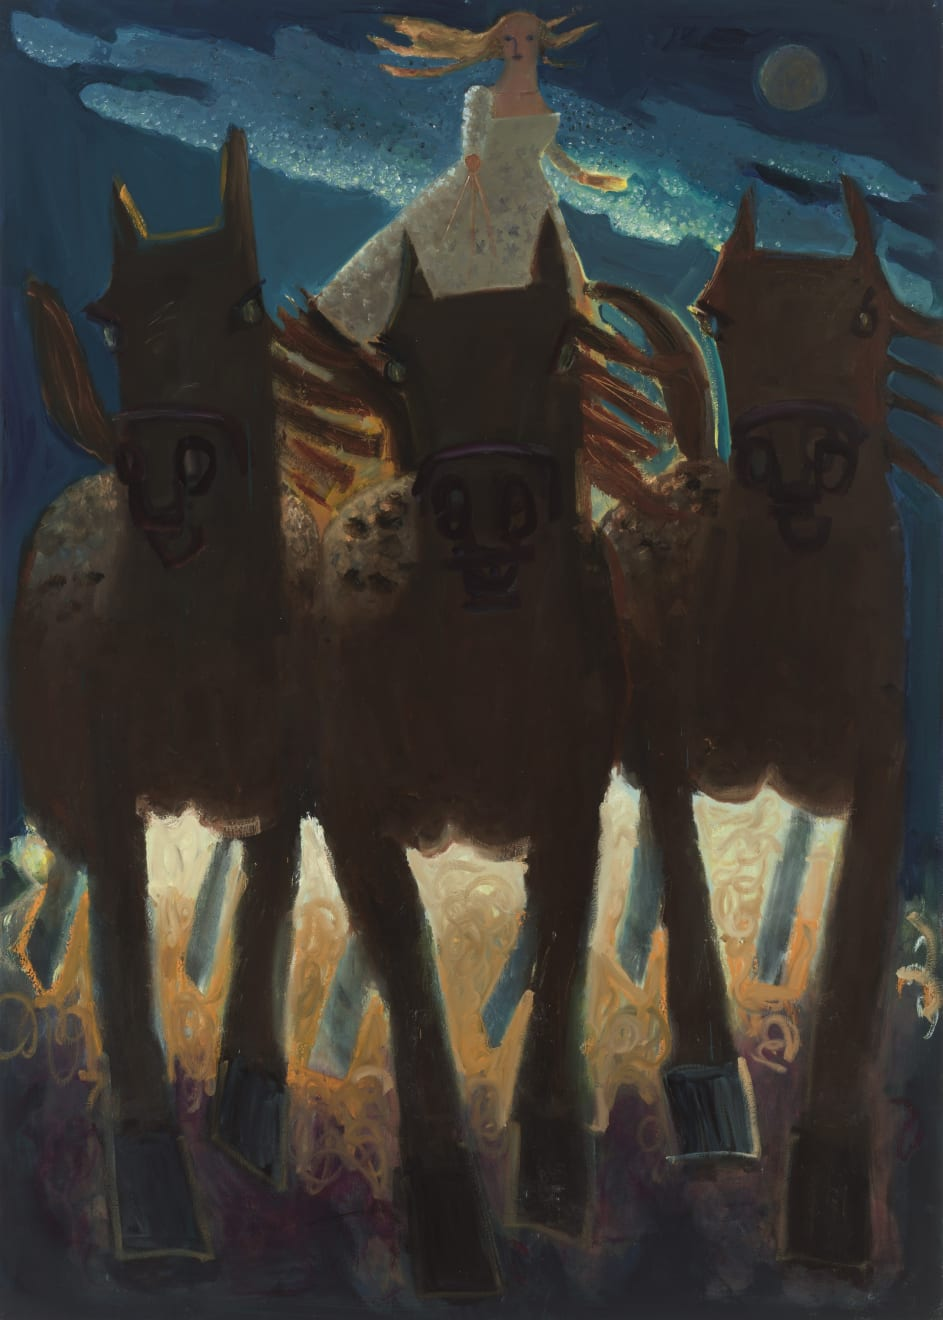 Kyle Staver, Dawn's Ride, 2020 Oil on Canvas, 70 x 50 in